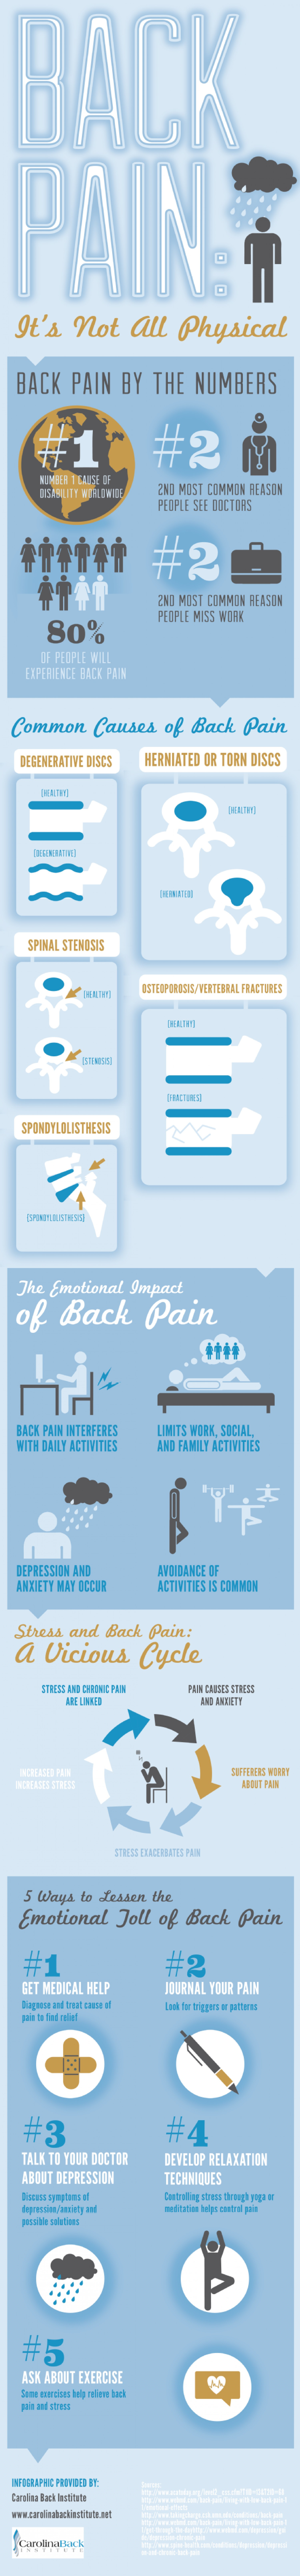 back-pain-its-not-all-physical_52900f3d2b151_w1500